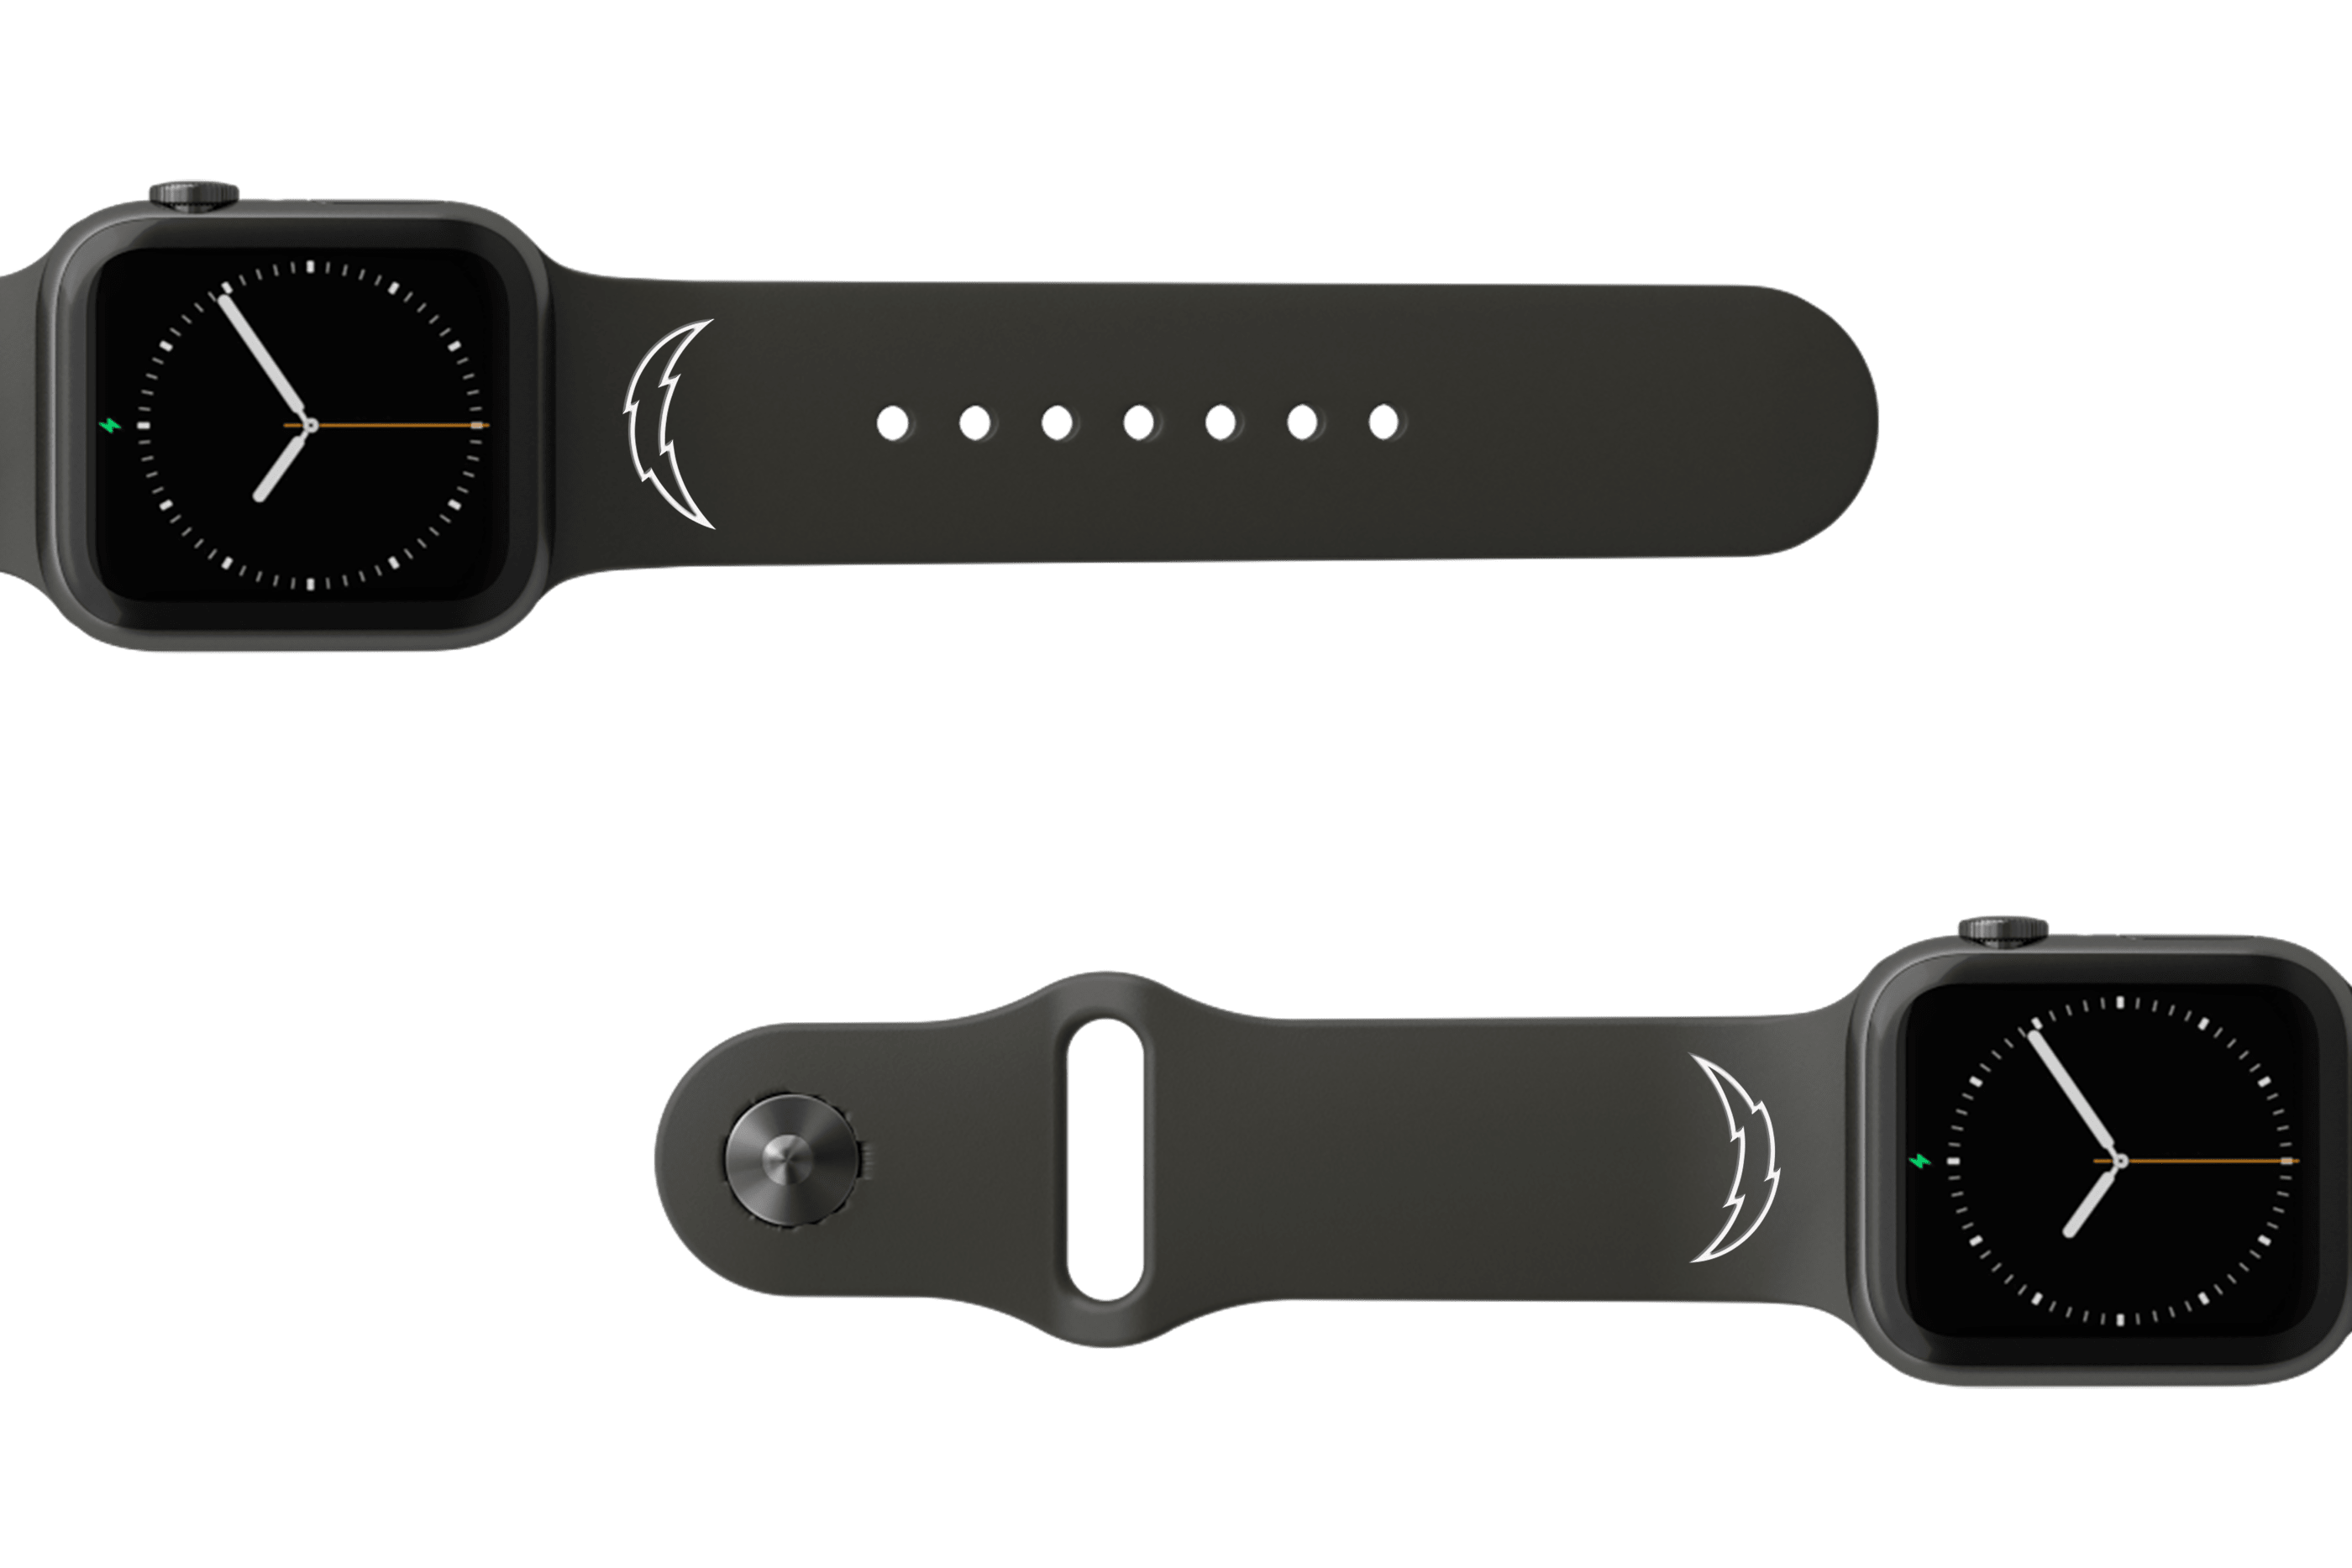 NFL Los Angeles Chargers Black   apple watch band with gray hardware viewed from top down